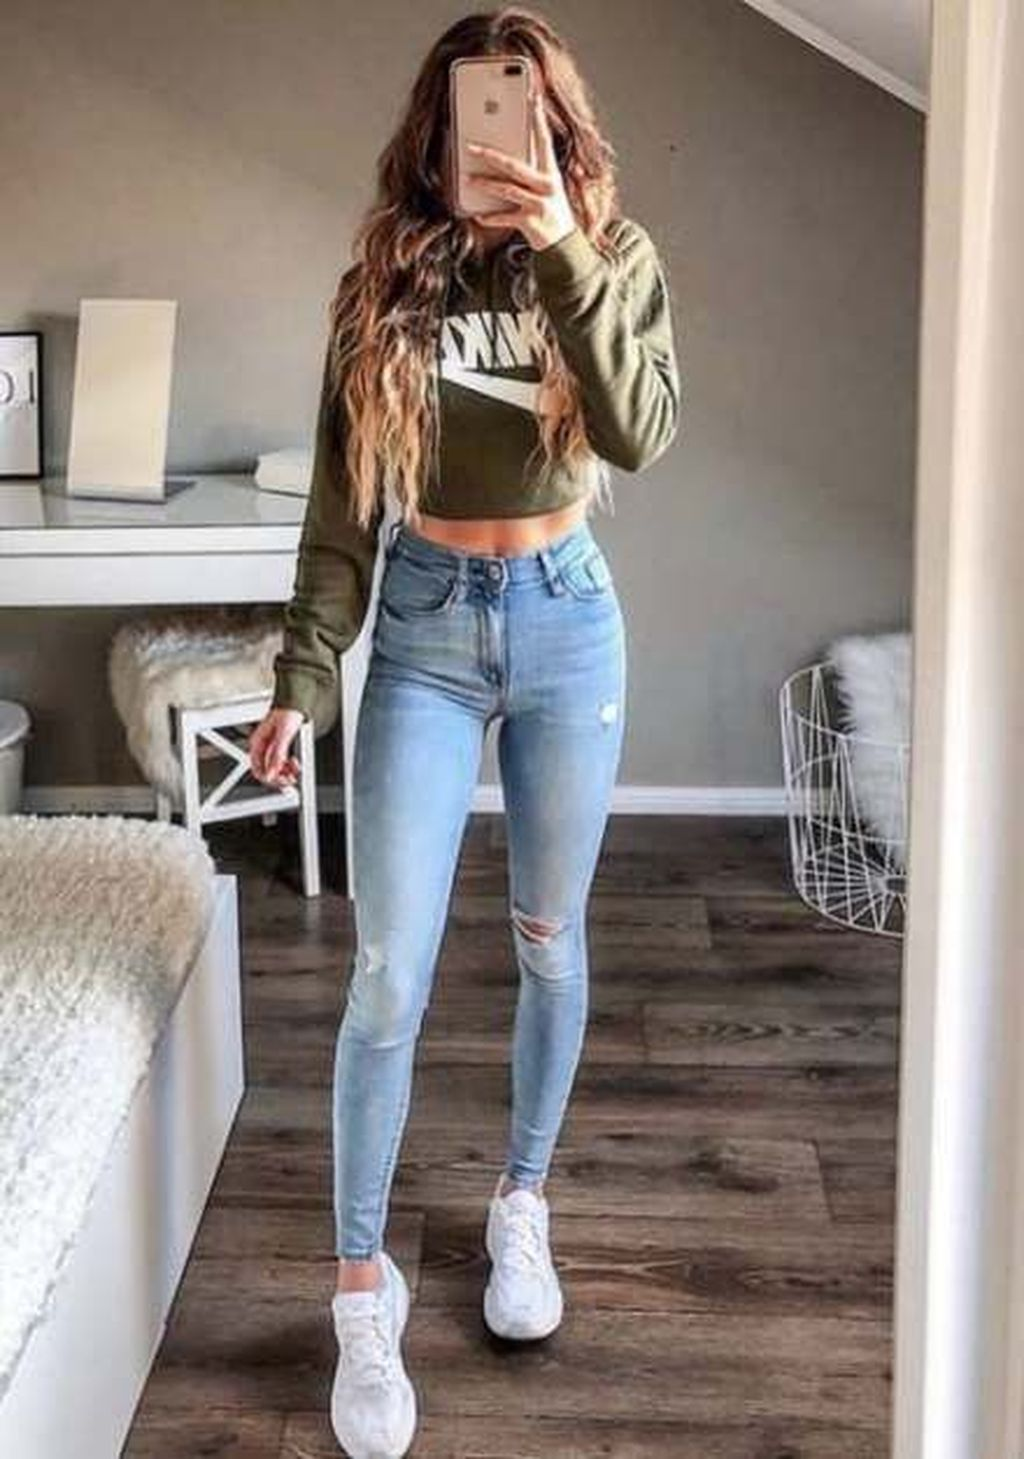 29+ Captivating Winter School Outfits Ideas With Jeans That